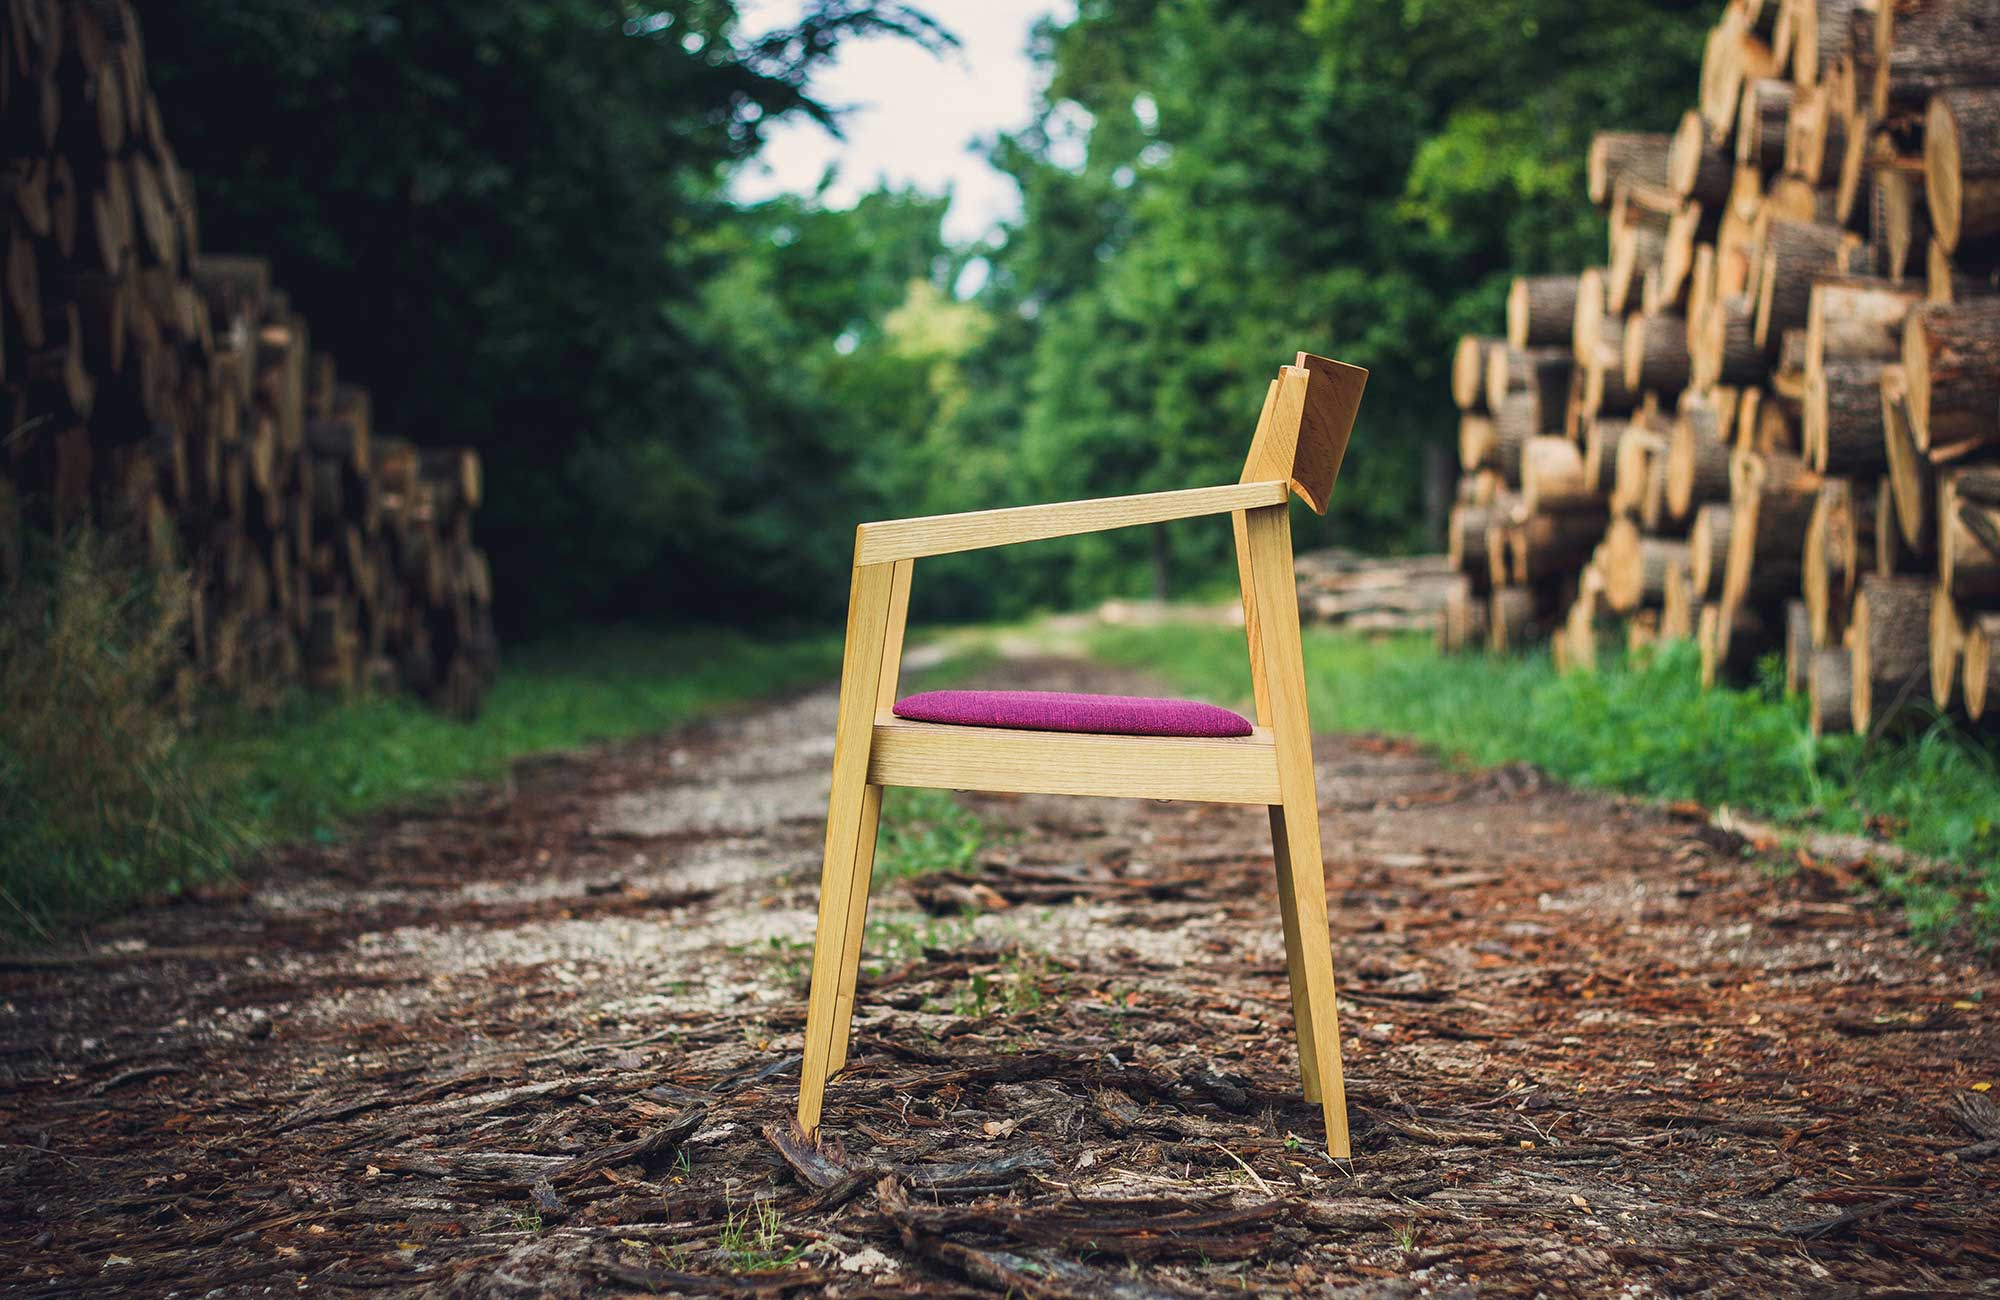 Public-chair-by-Mate-Horvath-04.jpg